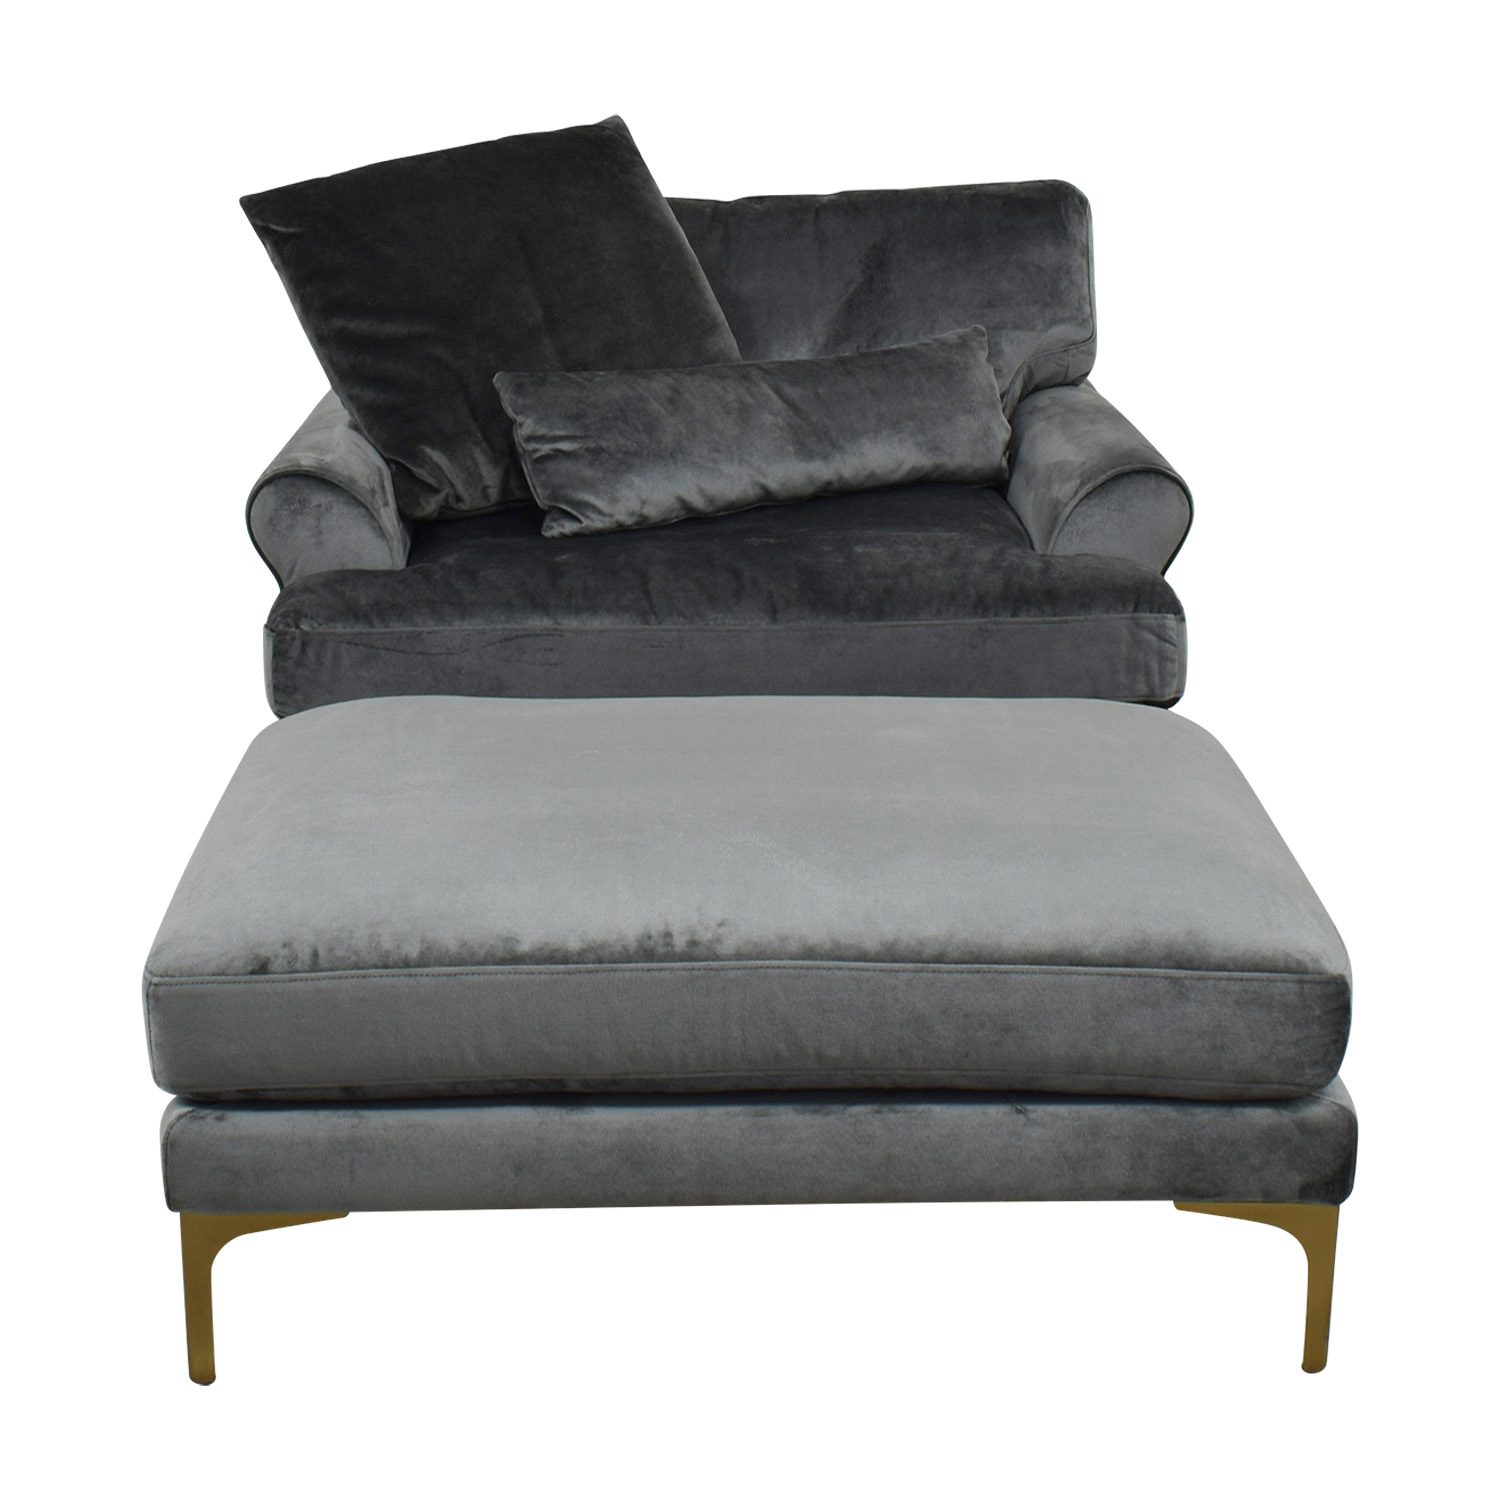 Maxwell Grey Accent Chair & OIttoman on sale